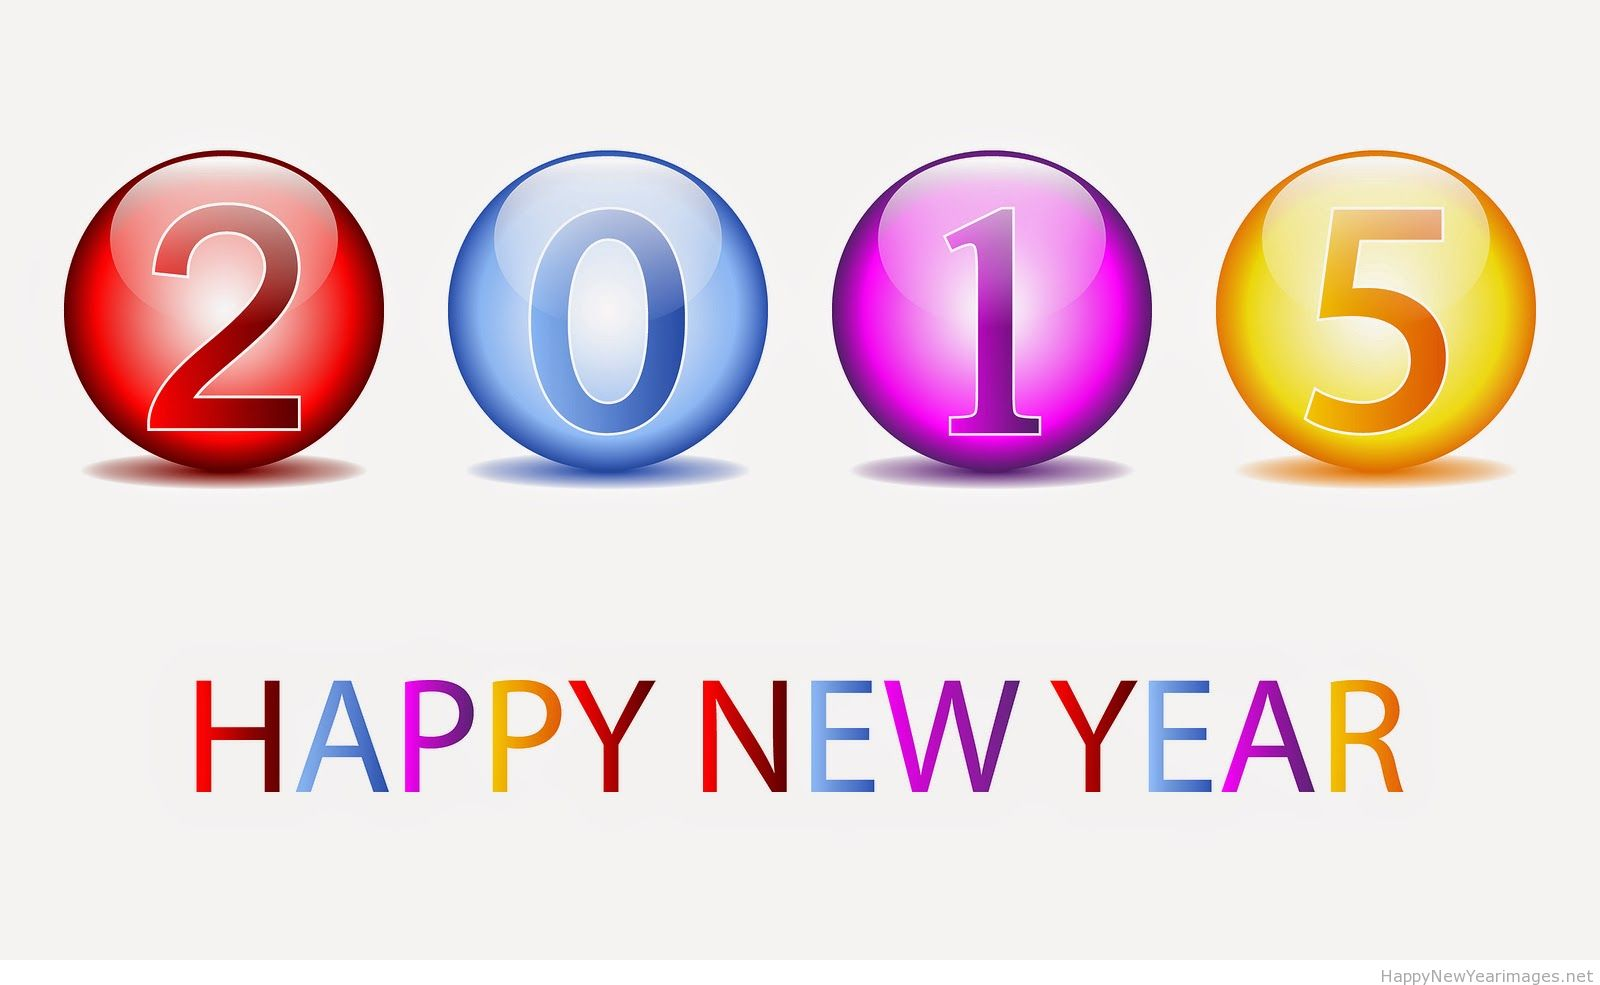 happy new year hd wallpaper 2015 greeting